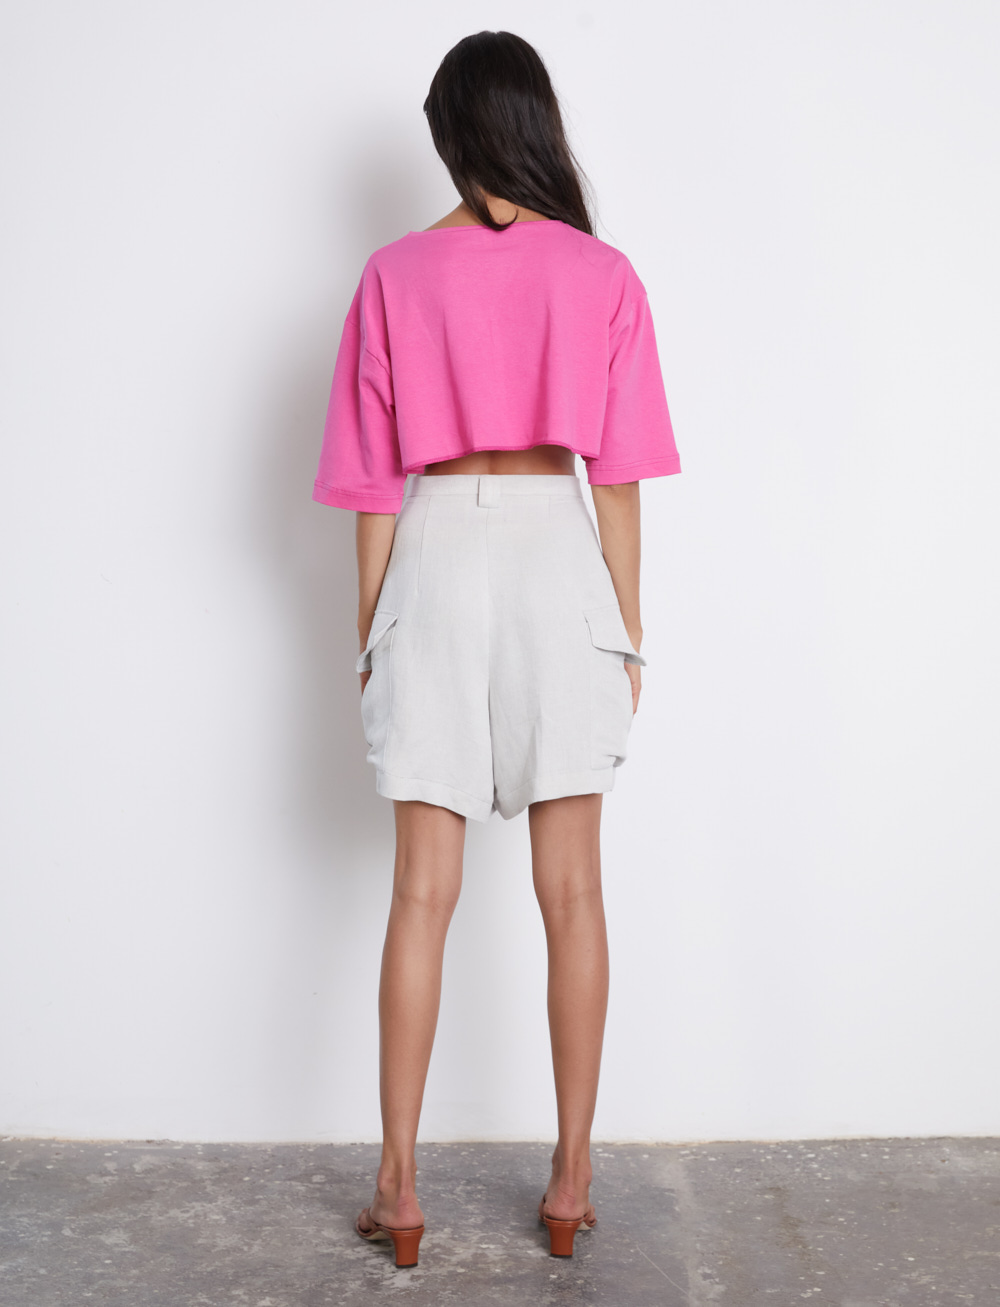 Pink Flamingo Top by Manurí on curated-crowd.com